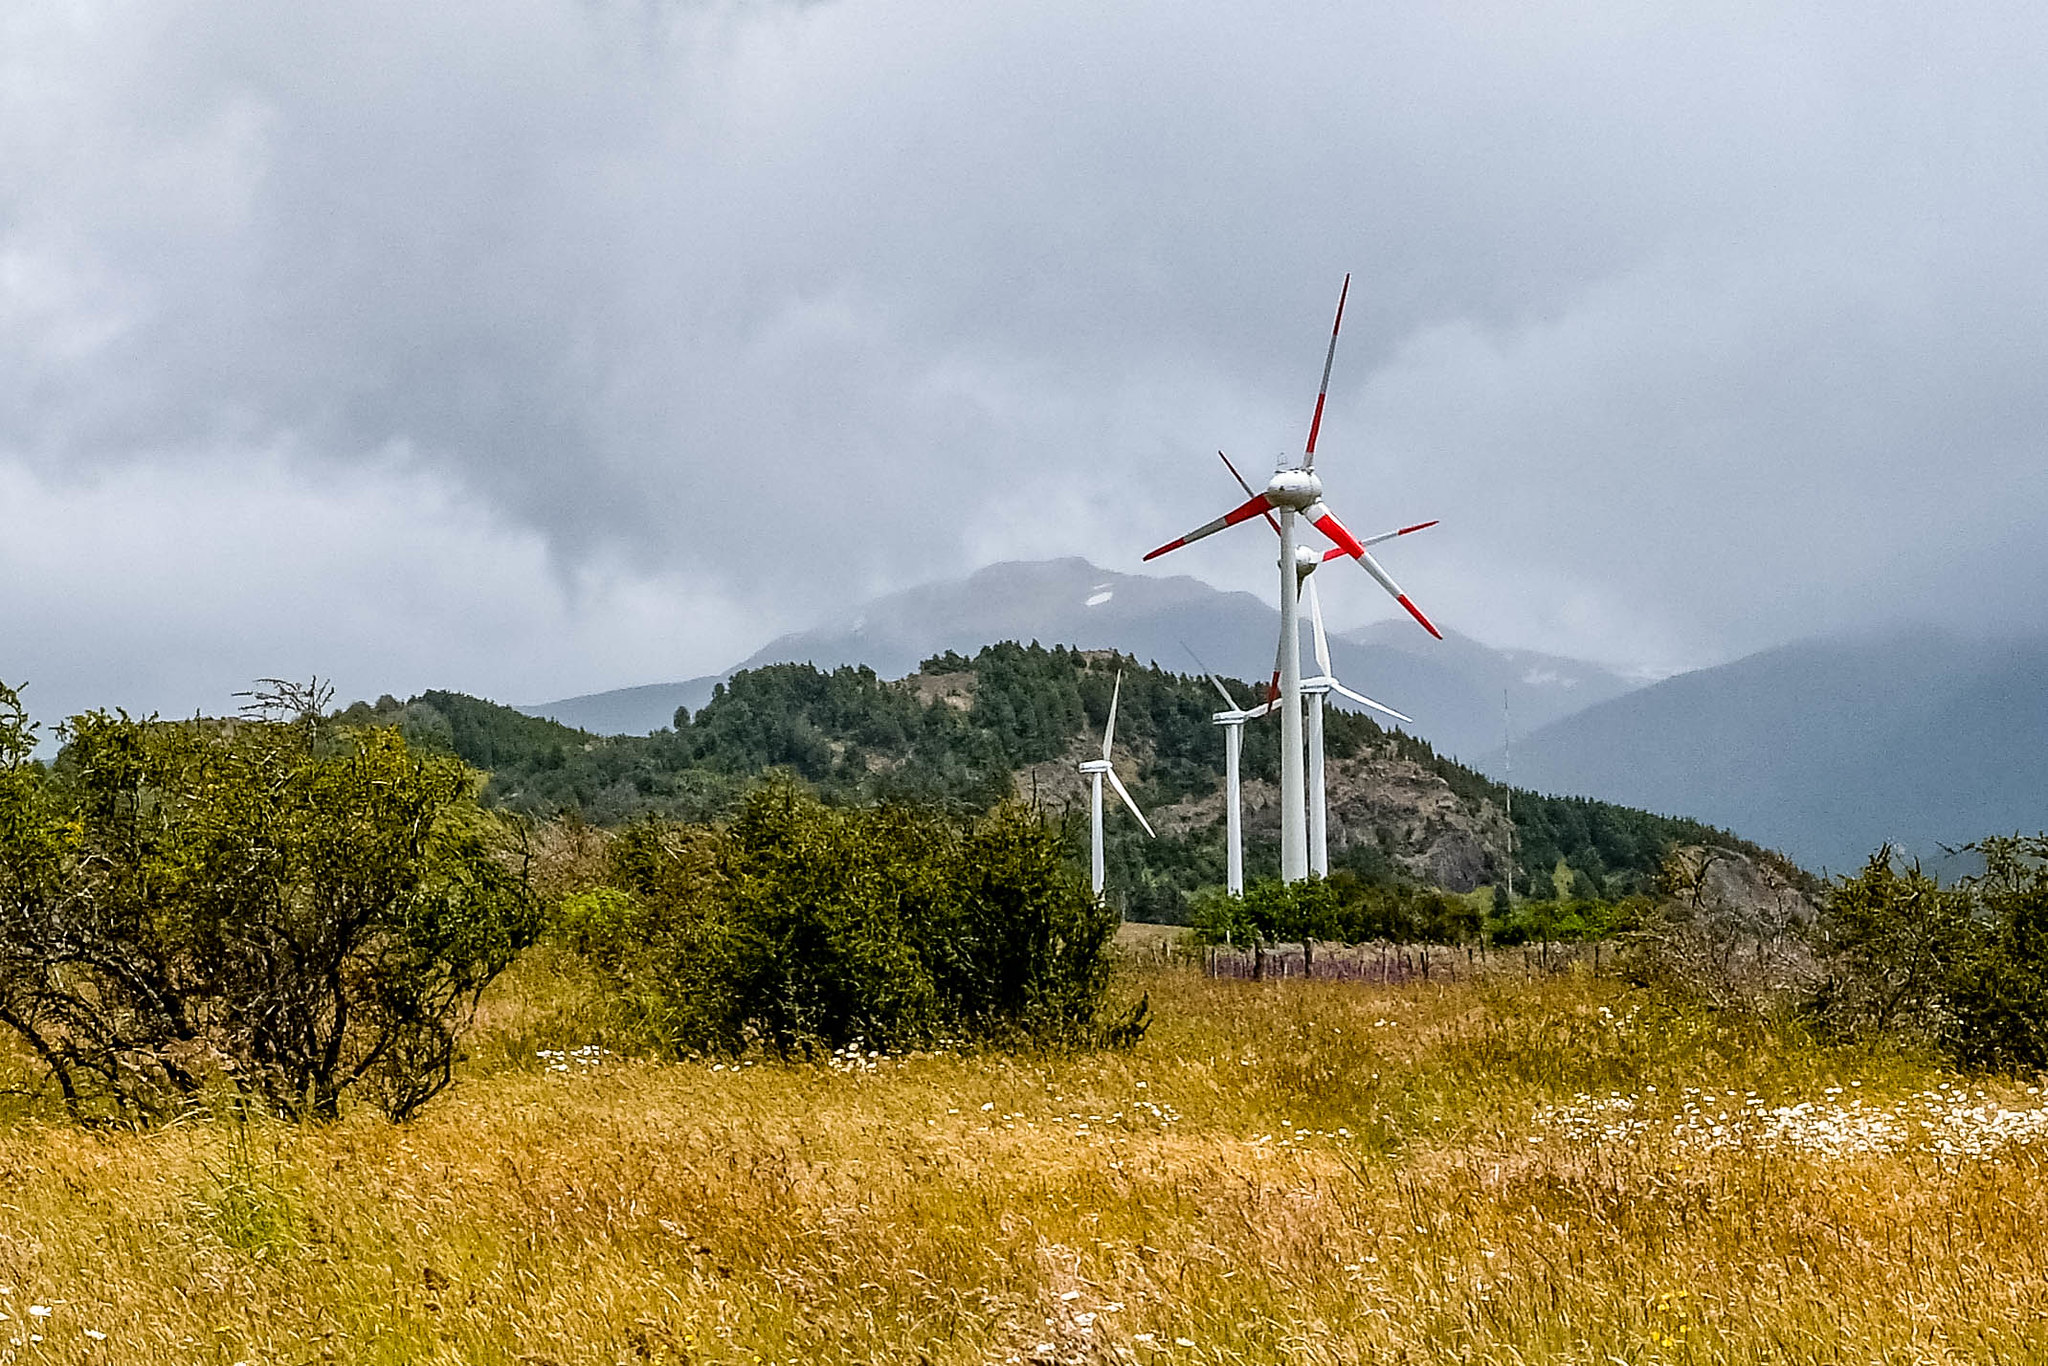 <p>Renewable energy is increasingly cost-competitive with coal and oil in Chile. Photo by sergejf/Flickr.</p>